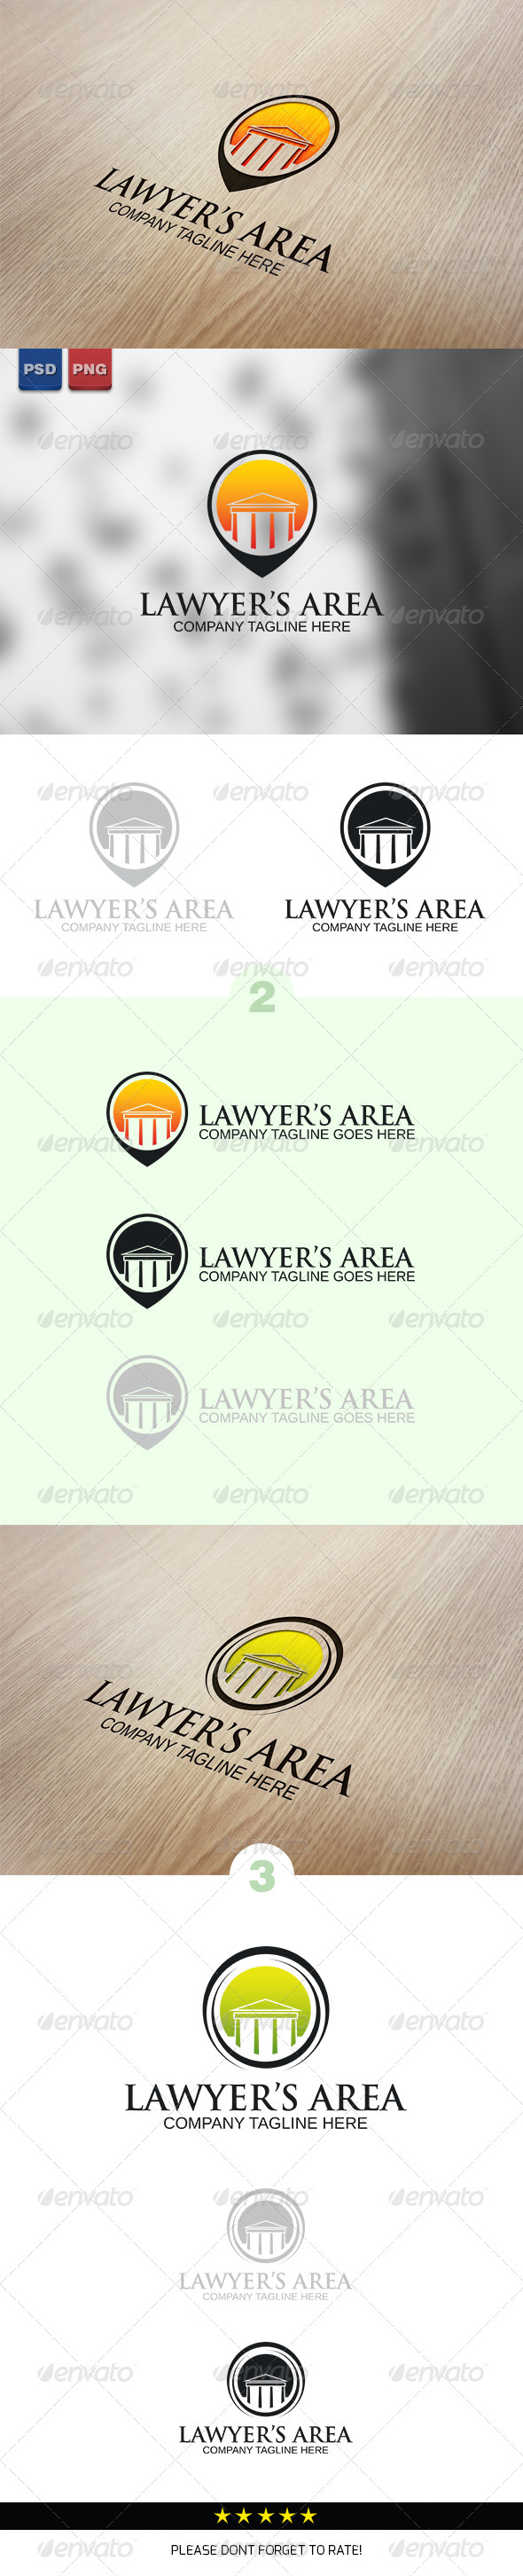 GraphicRiver Lawyer s Area Logo Template 5160170